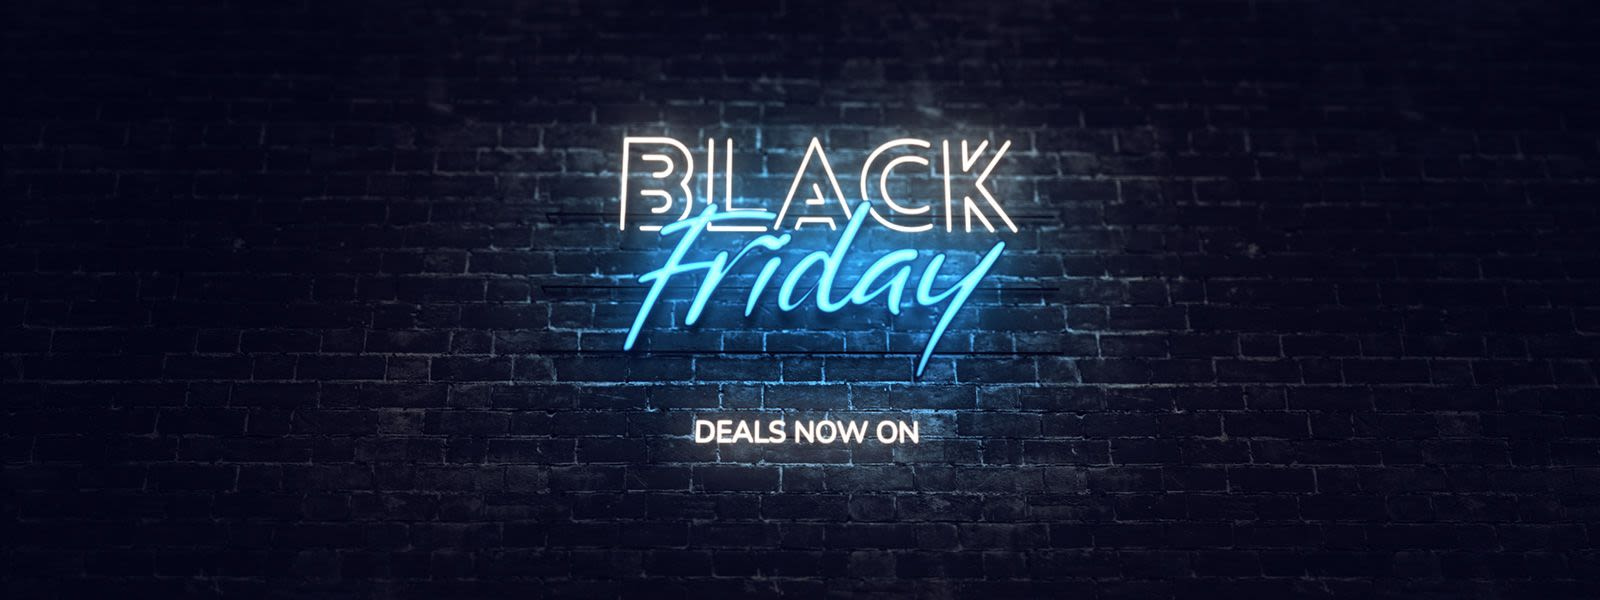 Black Friday Deals Now On